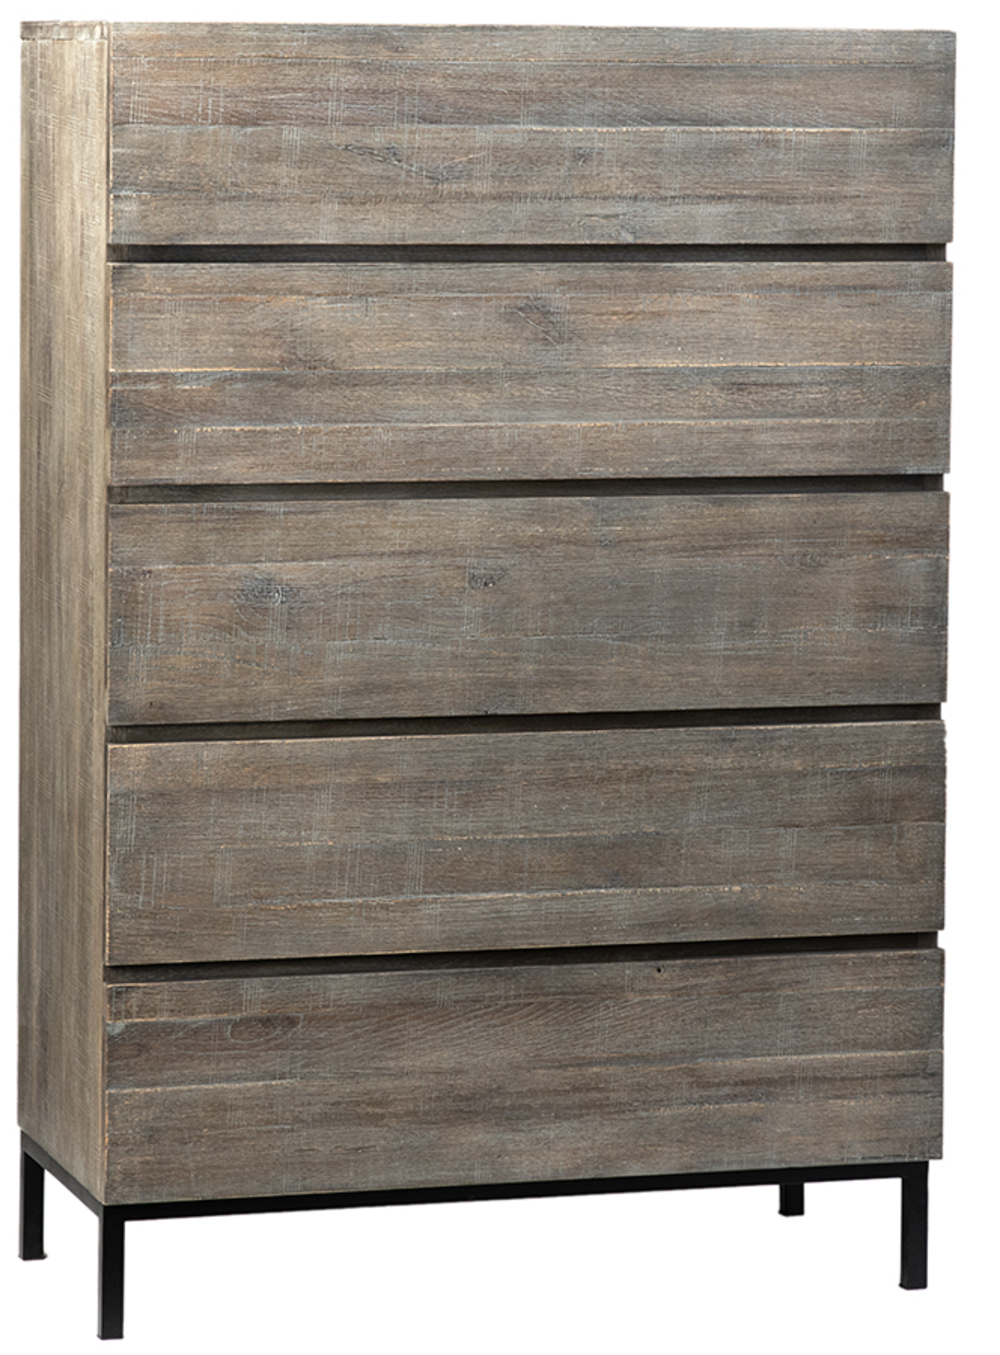 Dovetail Furniture - Belson Chest